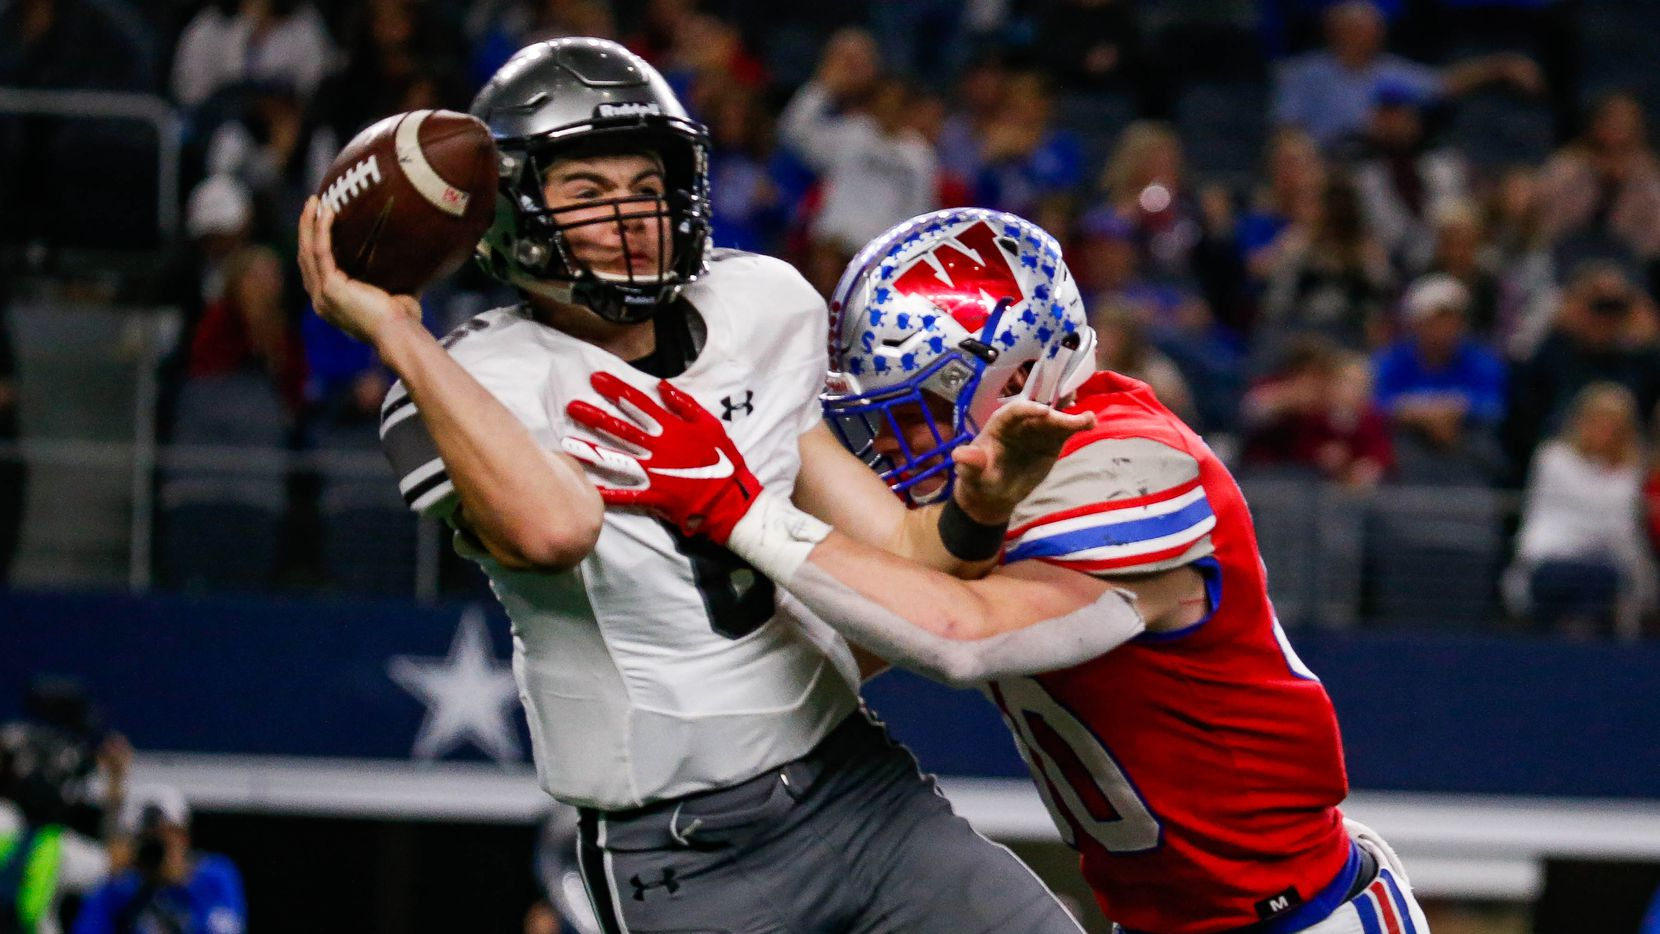 Denton Guyer's QB Jackson Arnold (6) is sacked in the fourth quarter of a Class 6A Division II state championship game between Denton Guyer and Austin Westlake at the AT&T Stadium in Arlington, on Saturday, December 21, 2019. Westlake won the game 24-0.